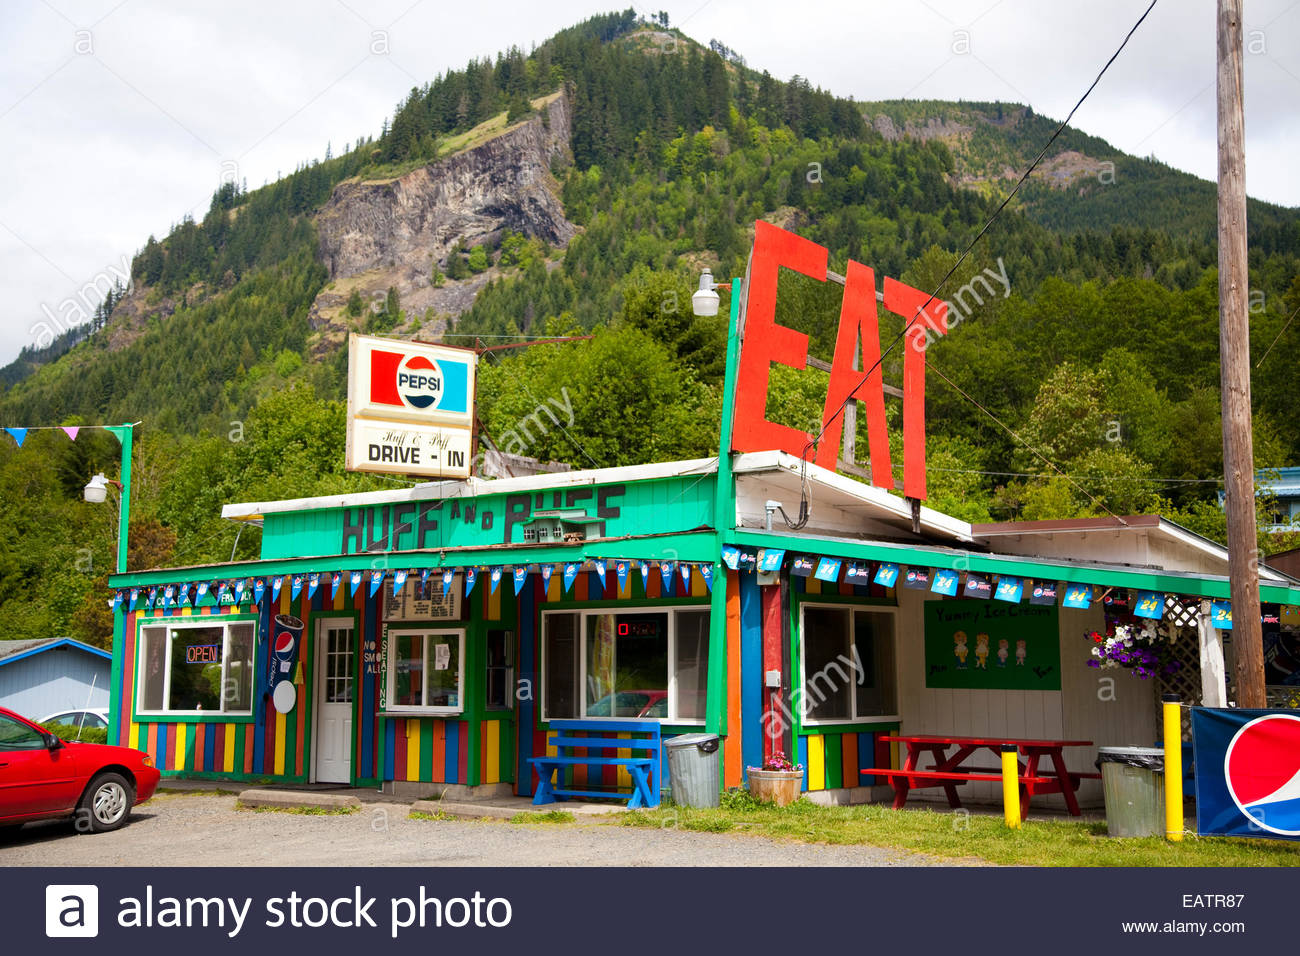 The Huff N Puff Drive In Diner Off Highway 12 Serves Burgers And Milkshakes